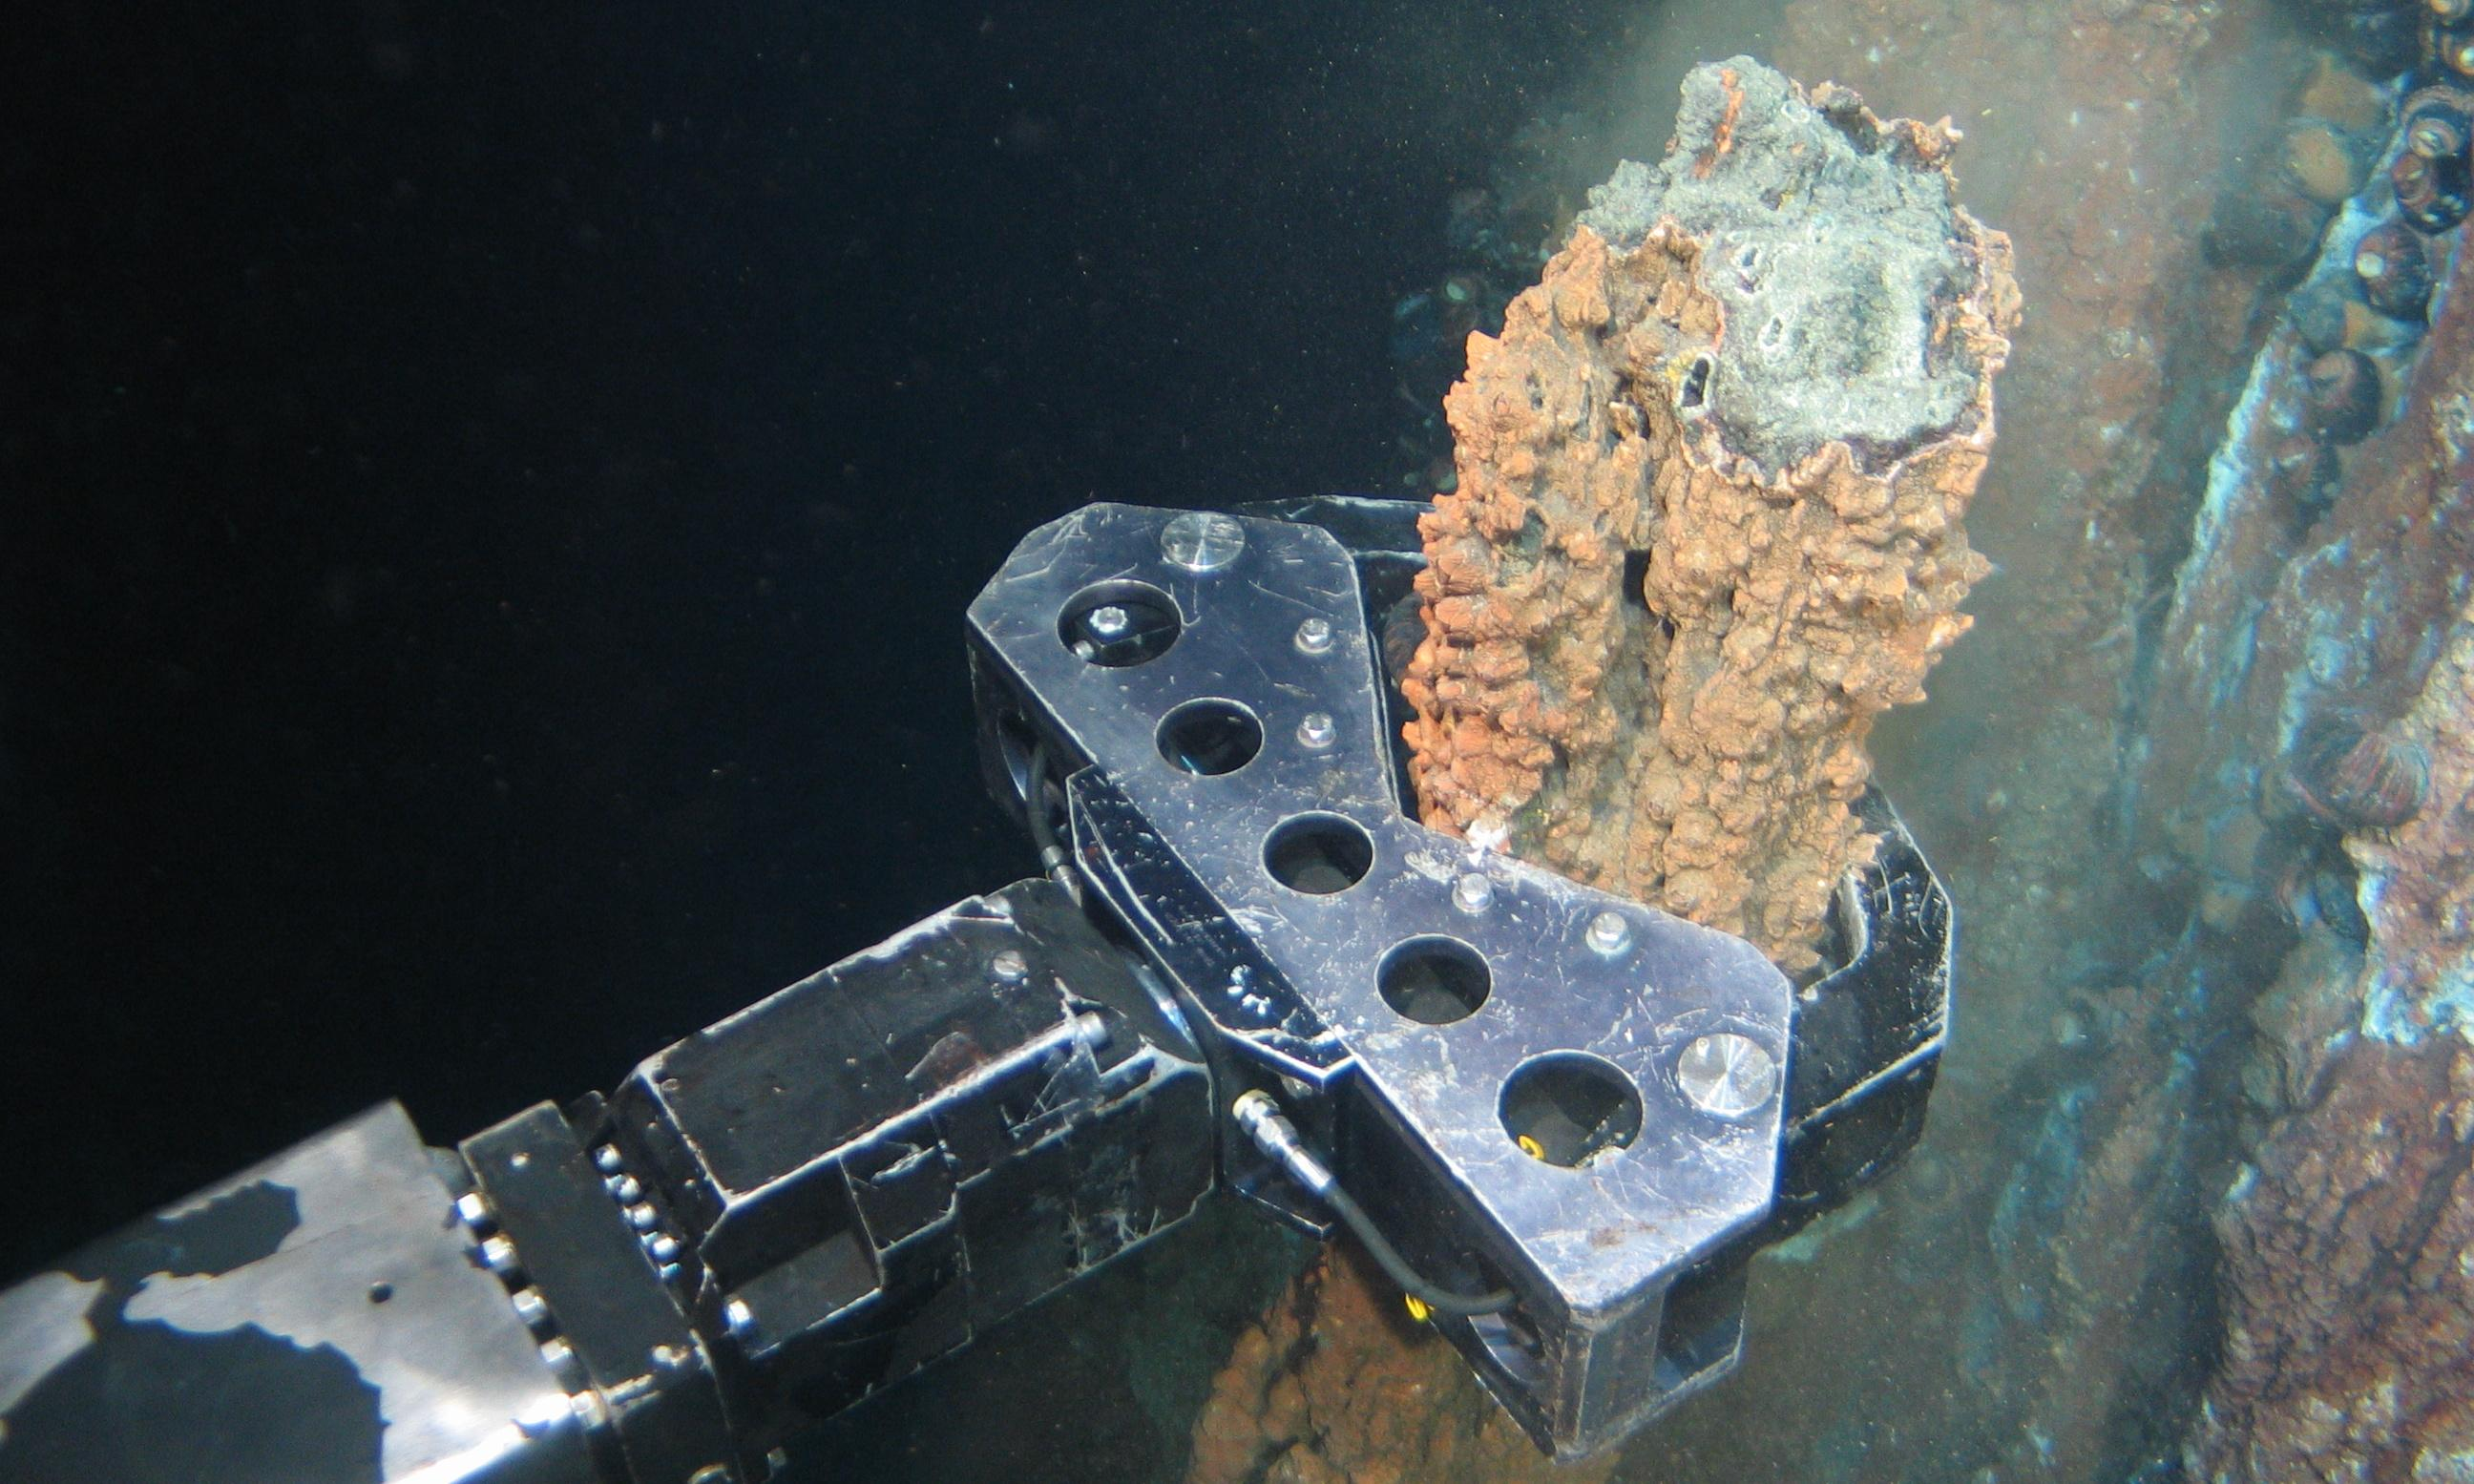 Deep-sea mining to turn oceans into 'new industrial frontier'